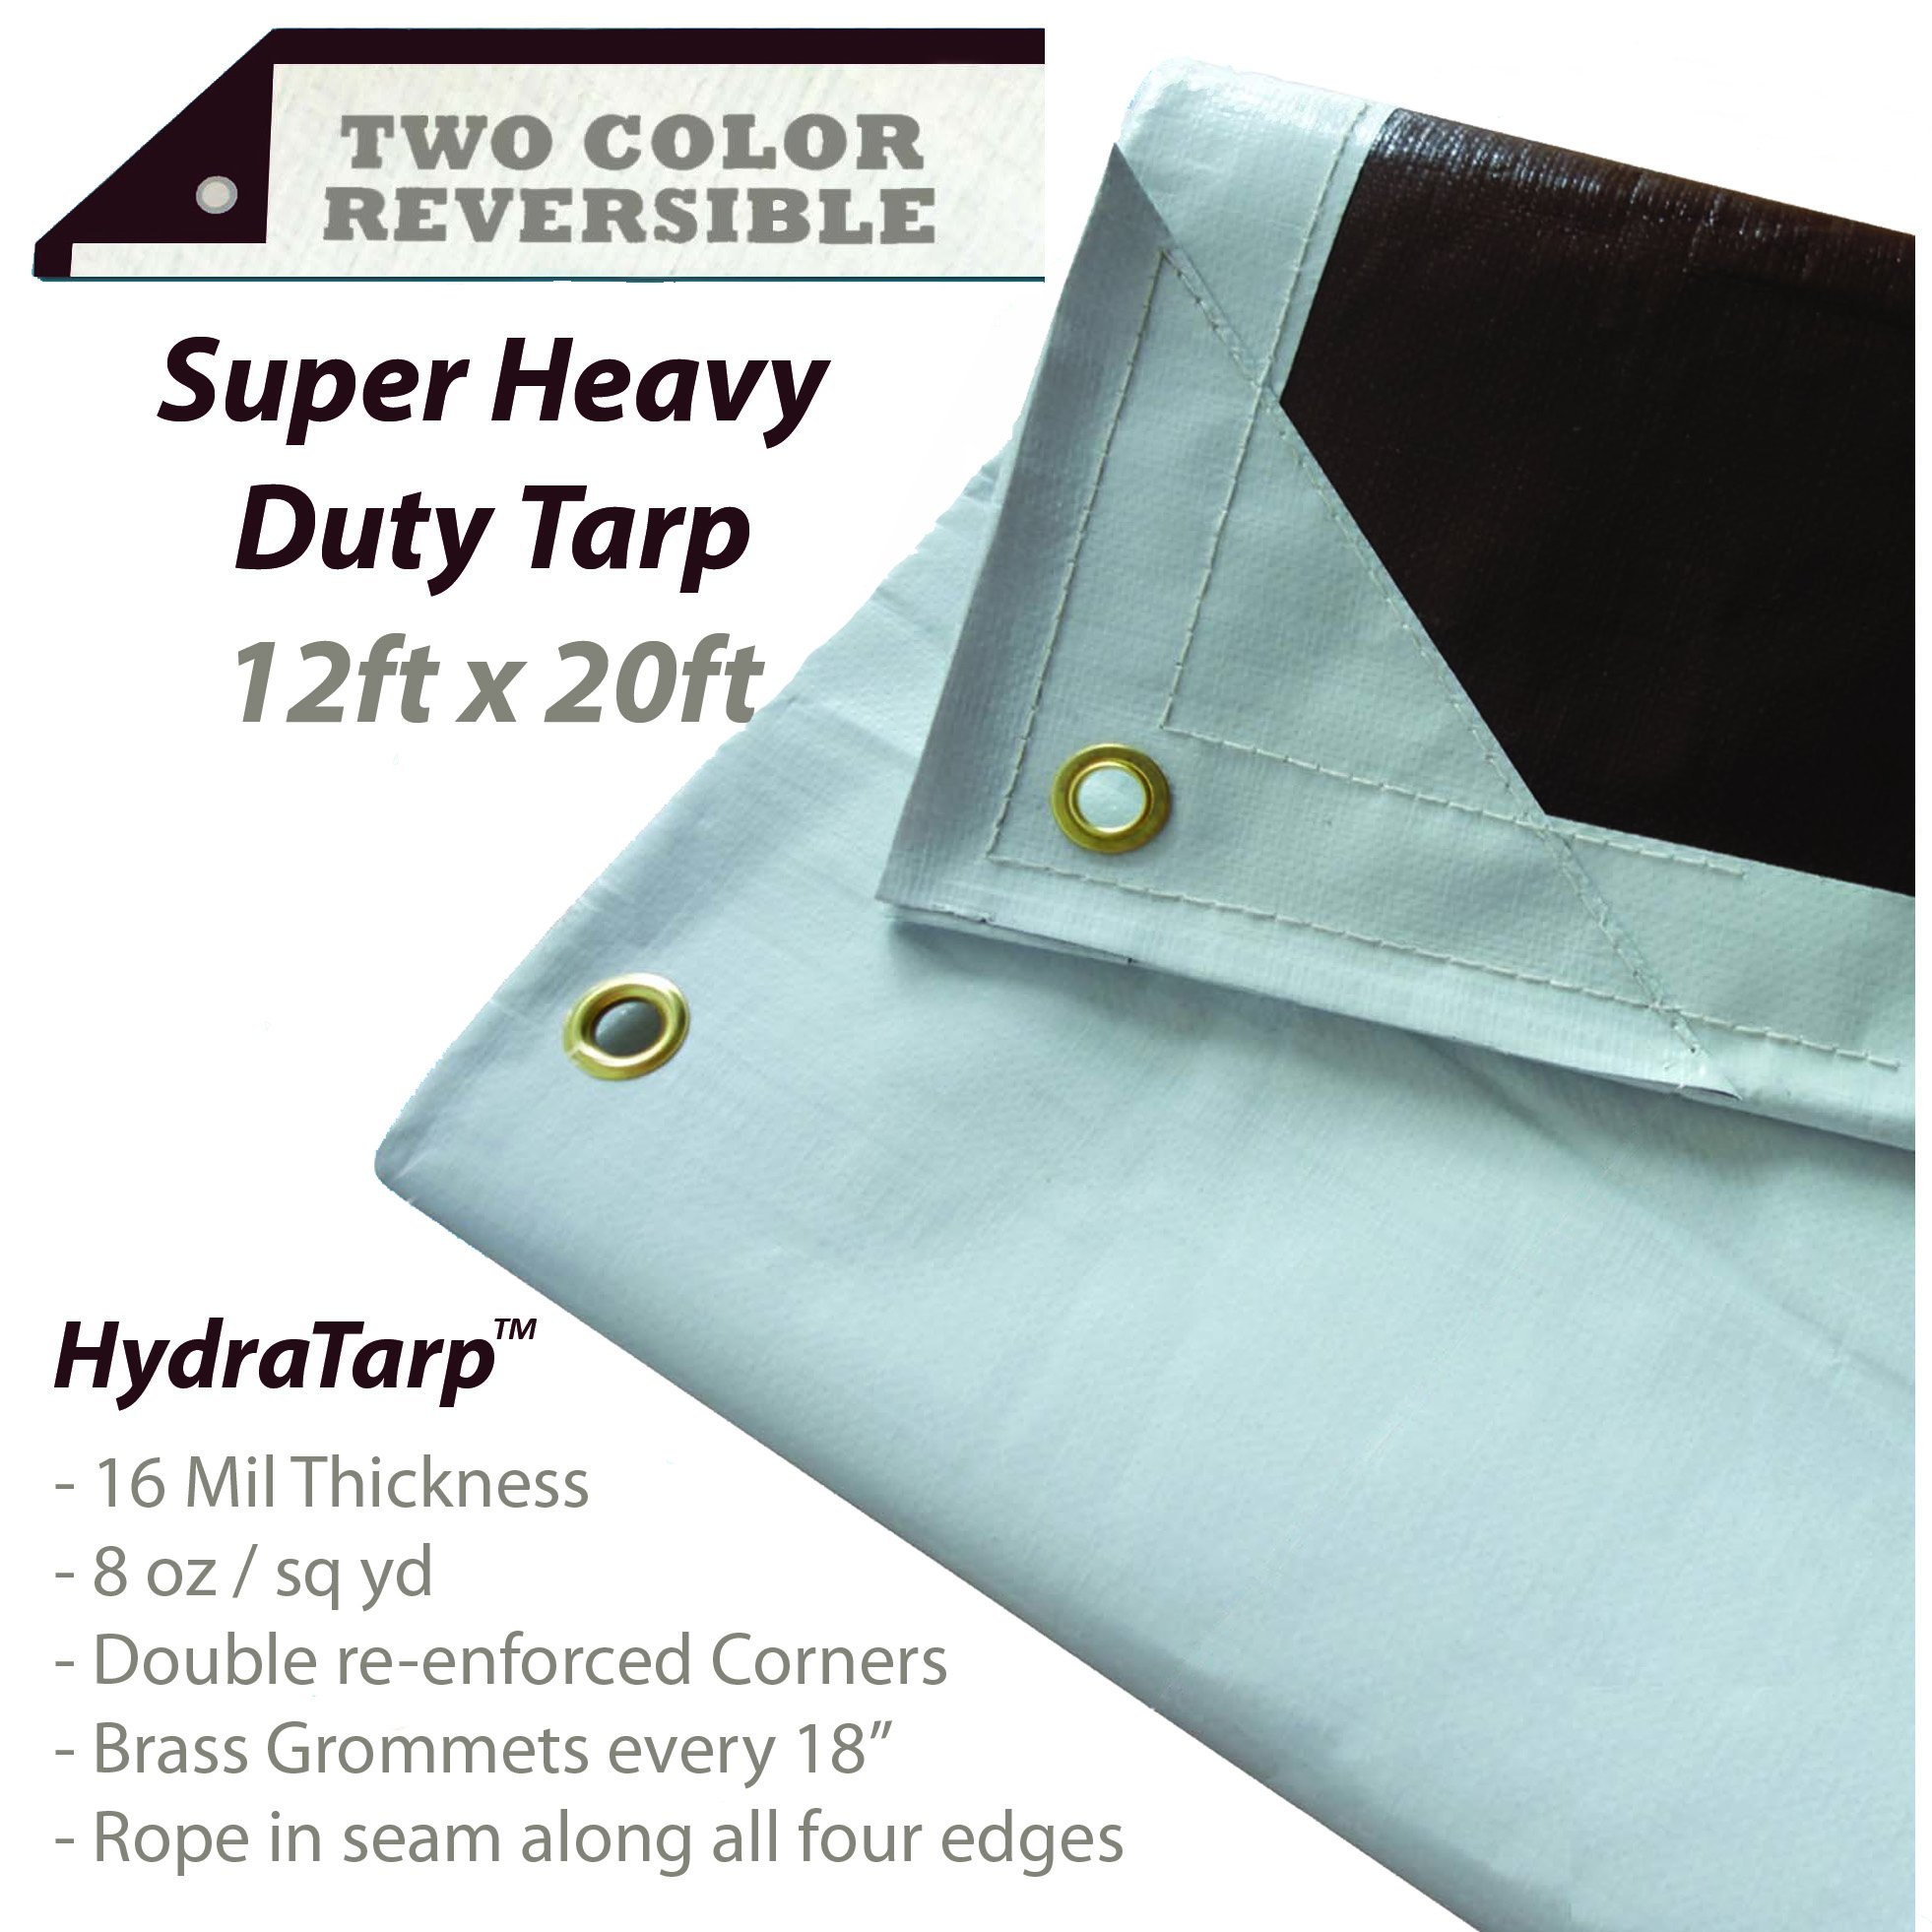 Watershed Innovations HydraTarp 12 Ft. X 20 Ft. Super Heavy Duty Waterproof Tarp - 16mil Thick - White/Brown Reversible Tarp by Watershed Innovations